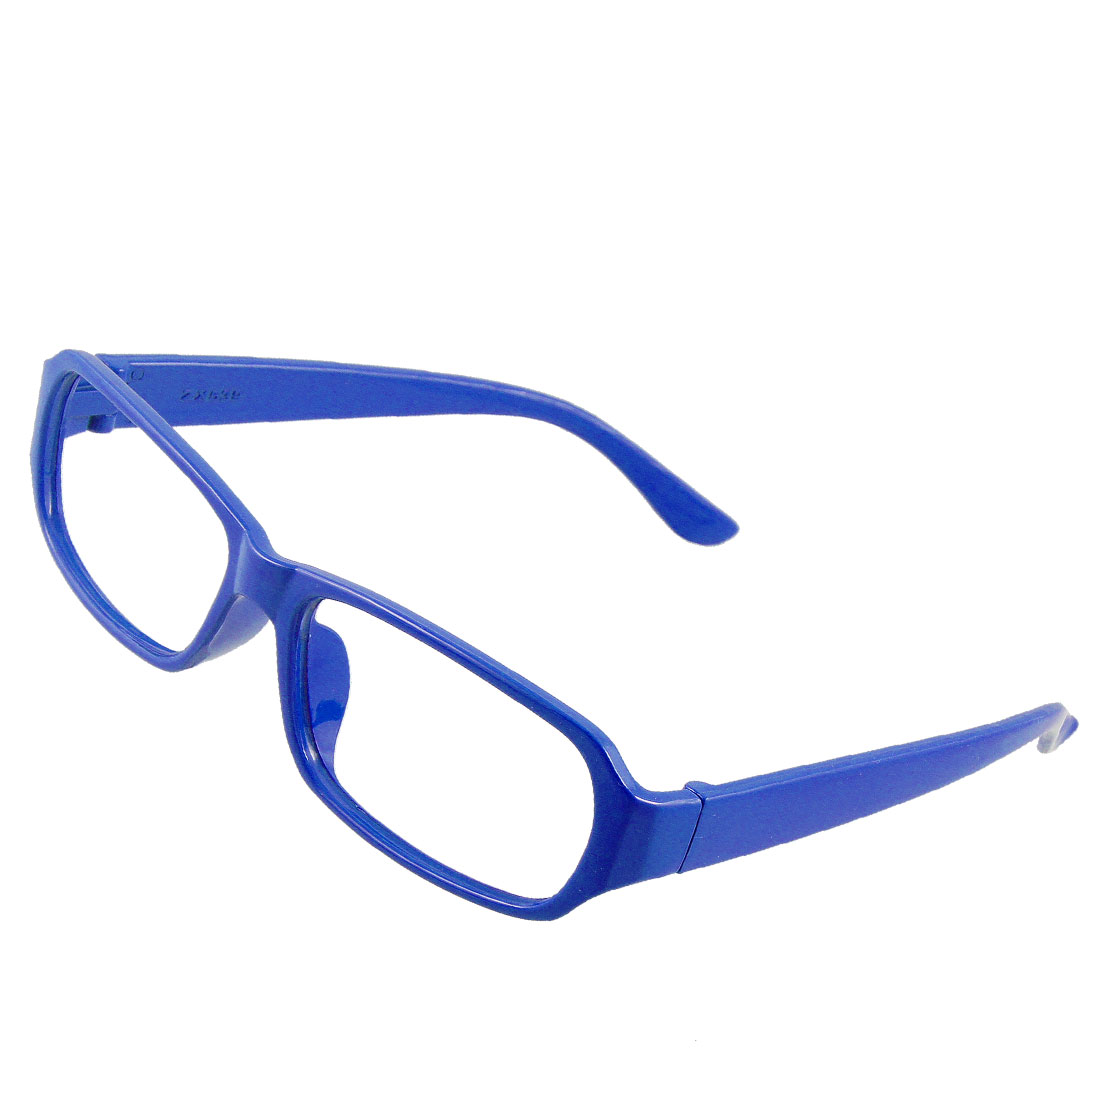 Plastic Oblong Shape Blue Eyewearing Glasses Frame for Women